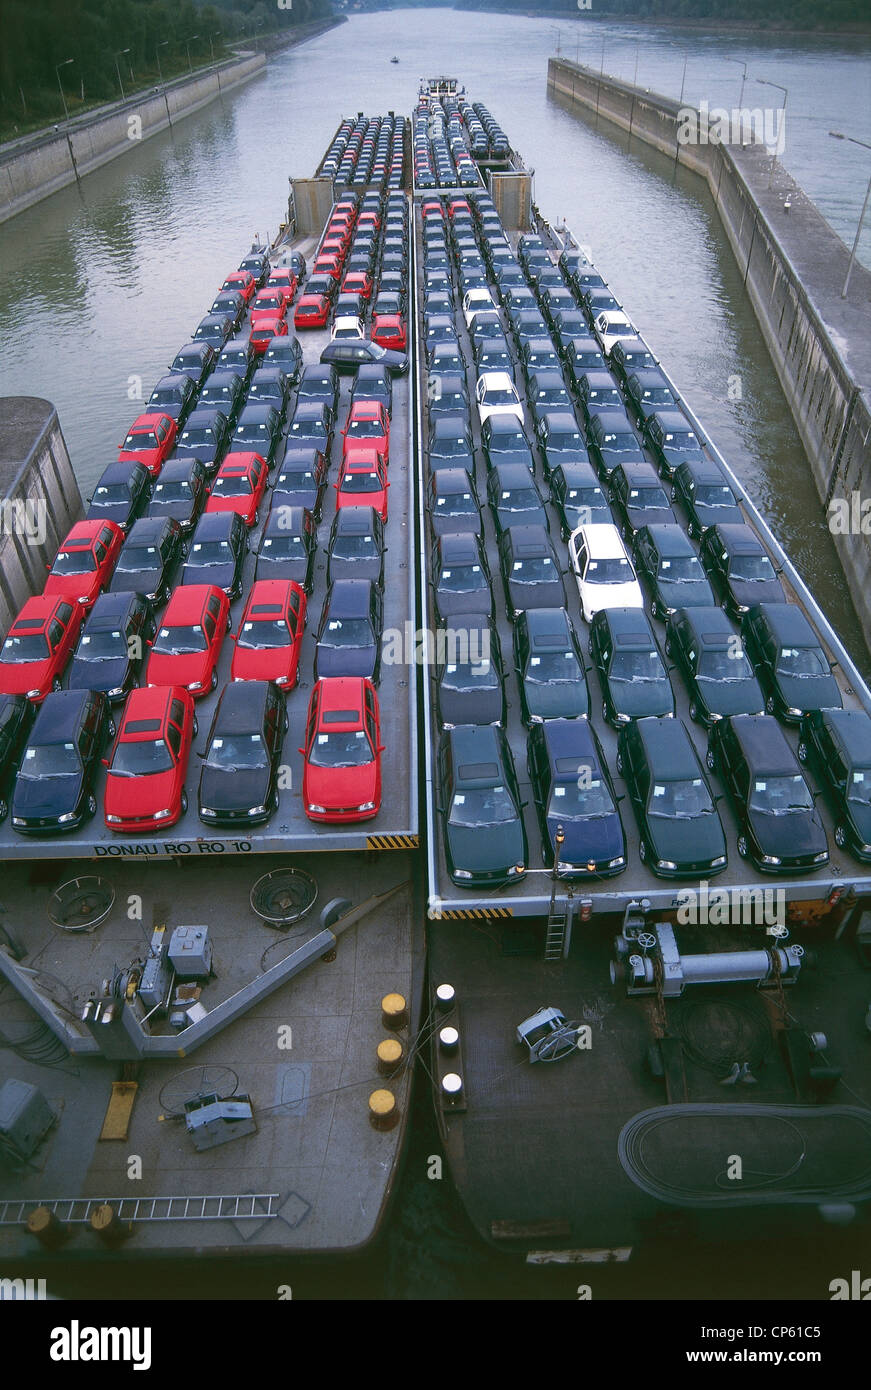 AUSTRIA - CLOSED Wilhering Ottensheim BARGES WITH CARS - Stock Image